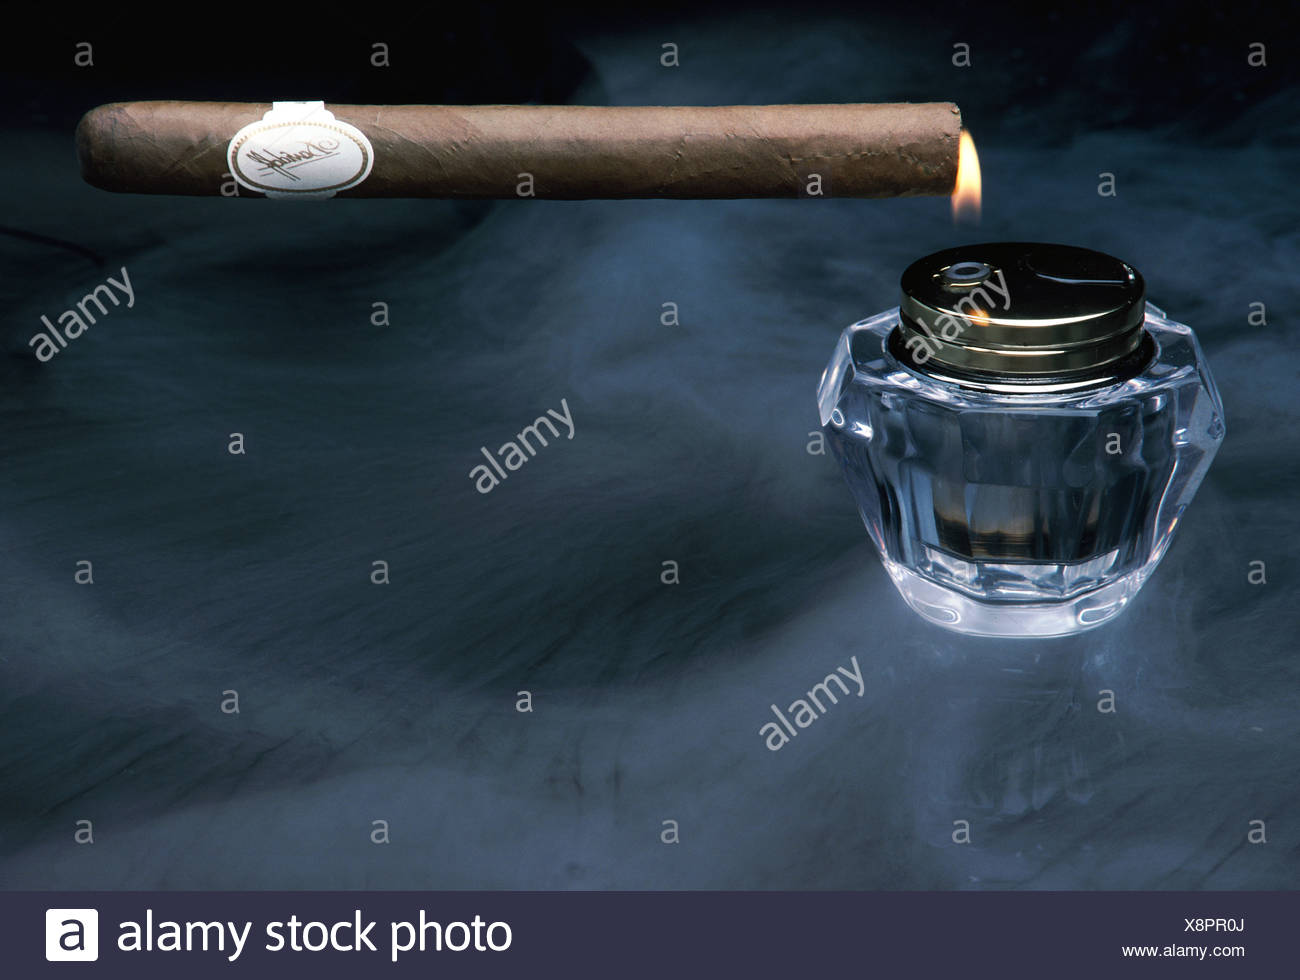 cigar and lighter - Stock Image